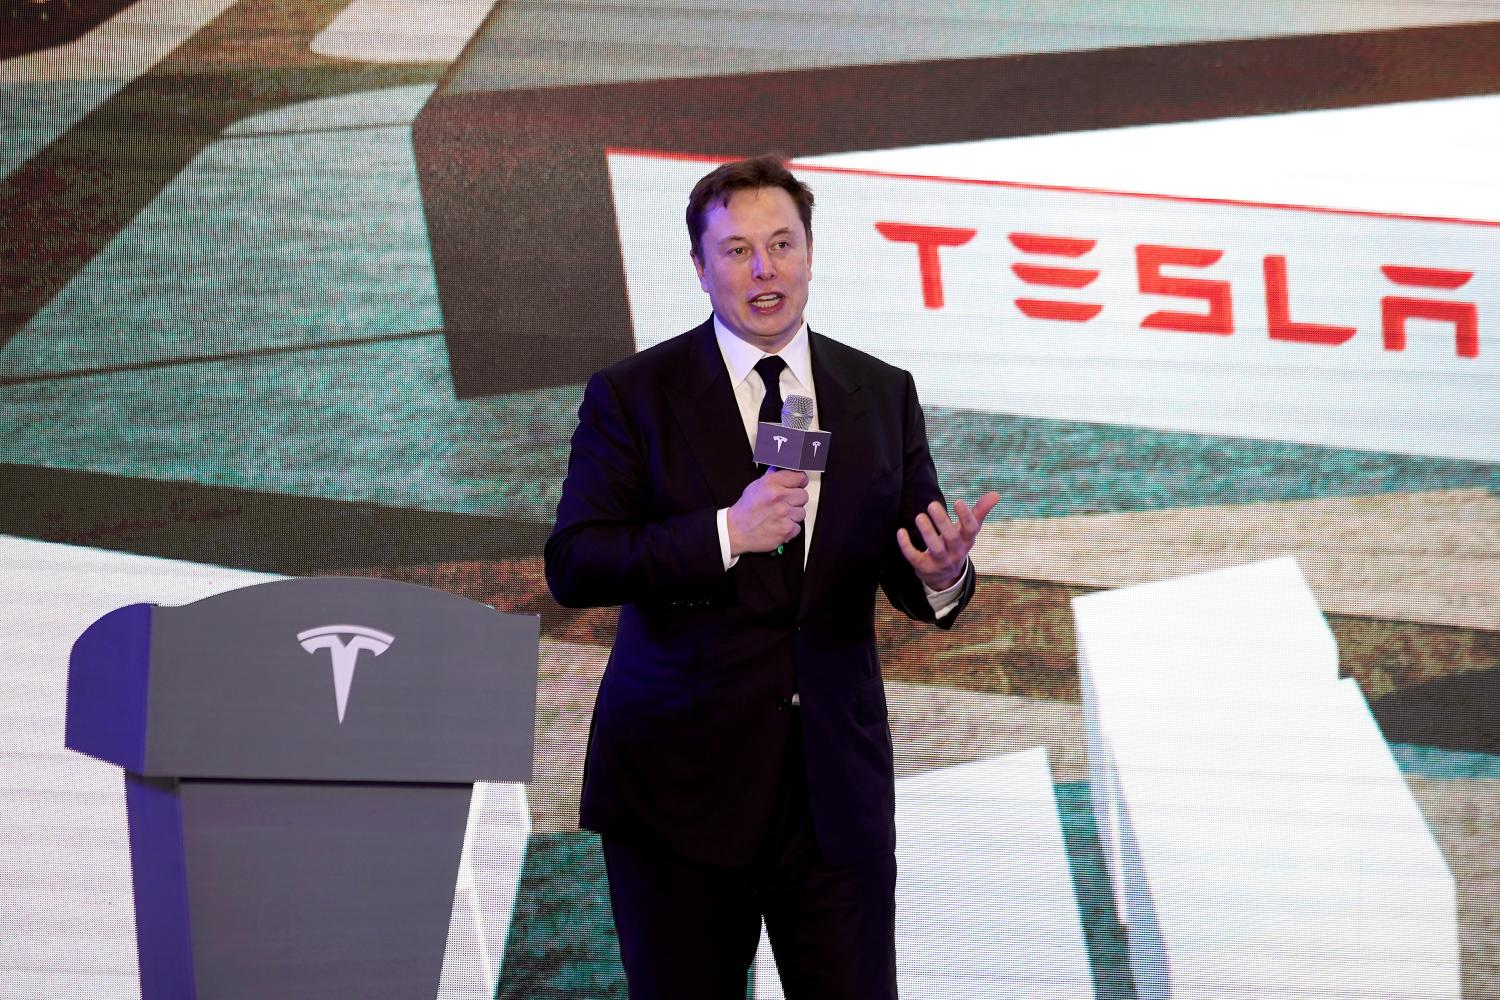 Elon Musk at a ceremony in January for Tesla's new China factory in Shanghai.REUTERS